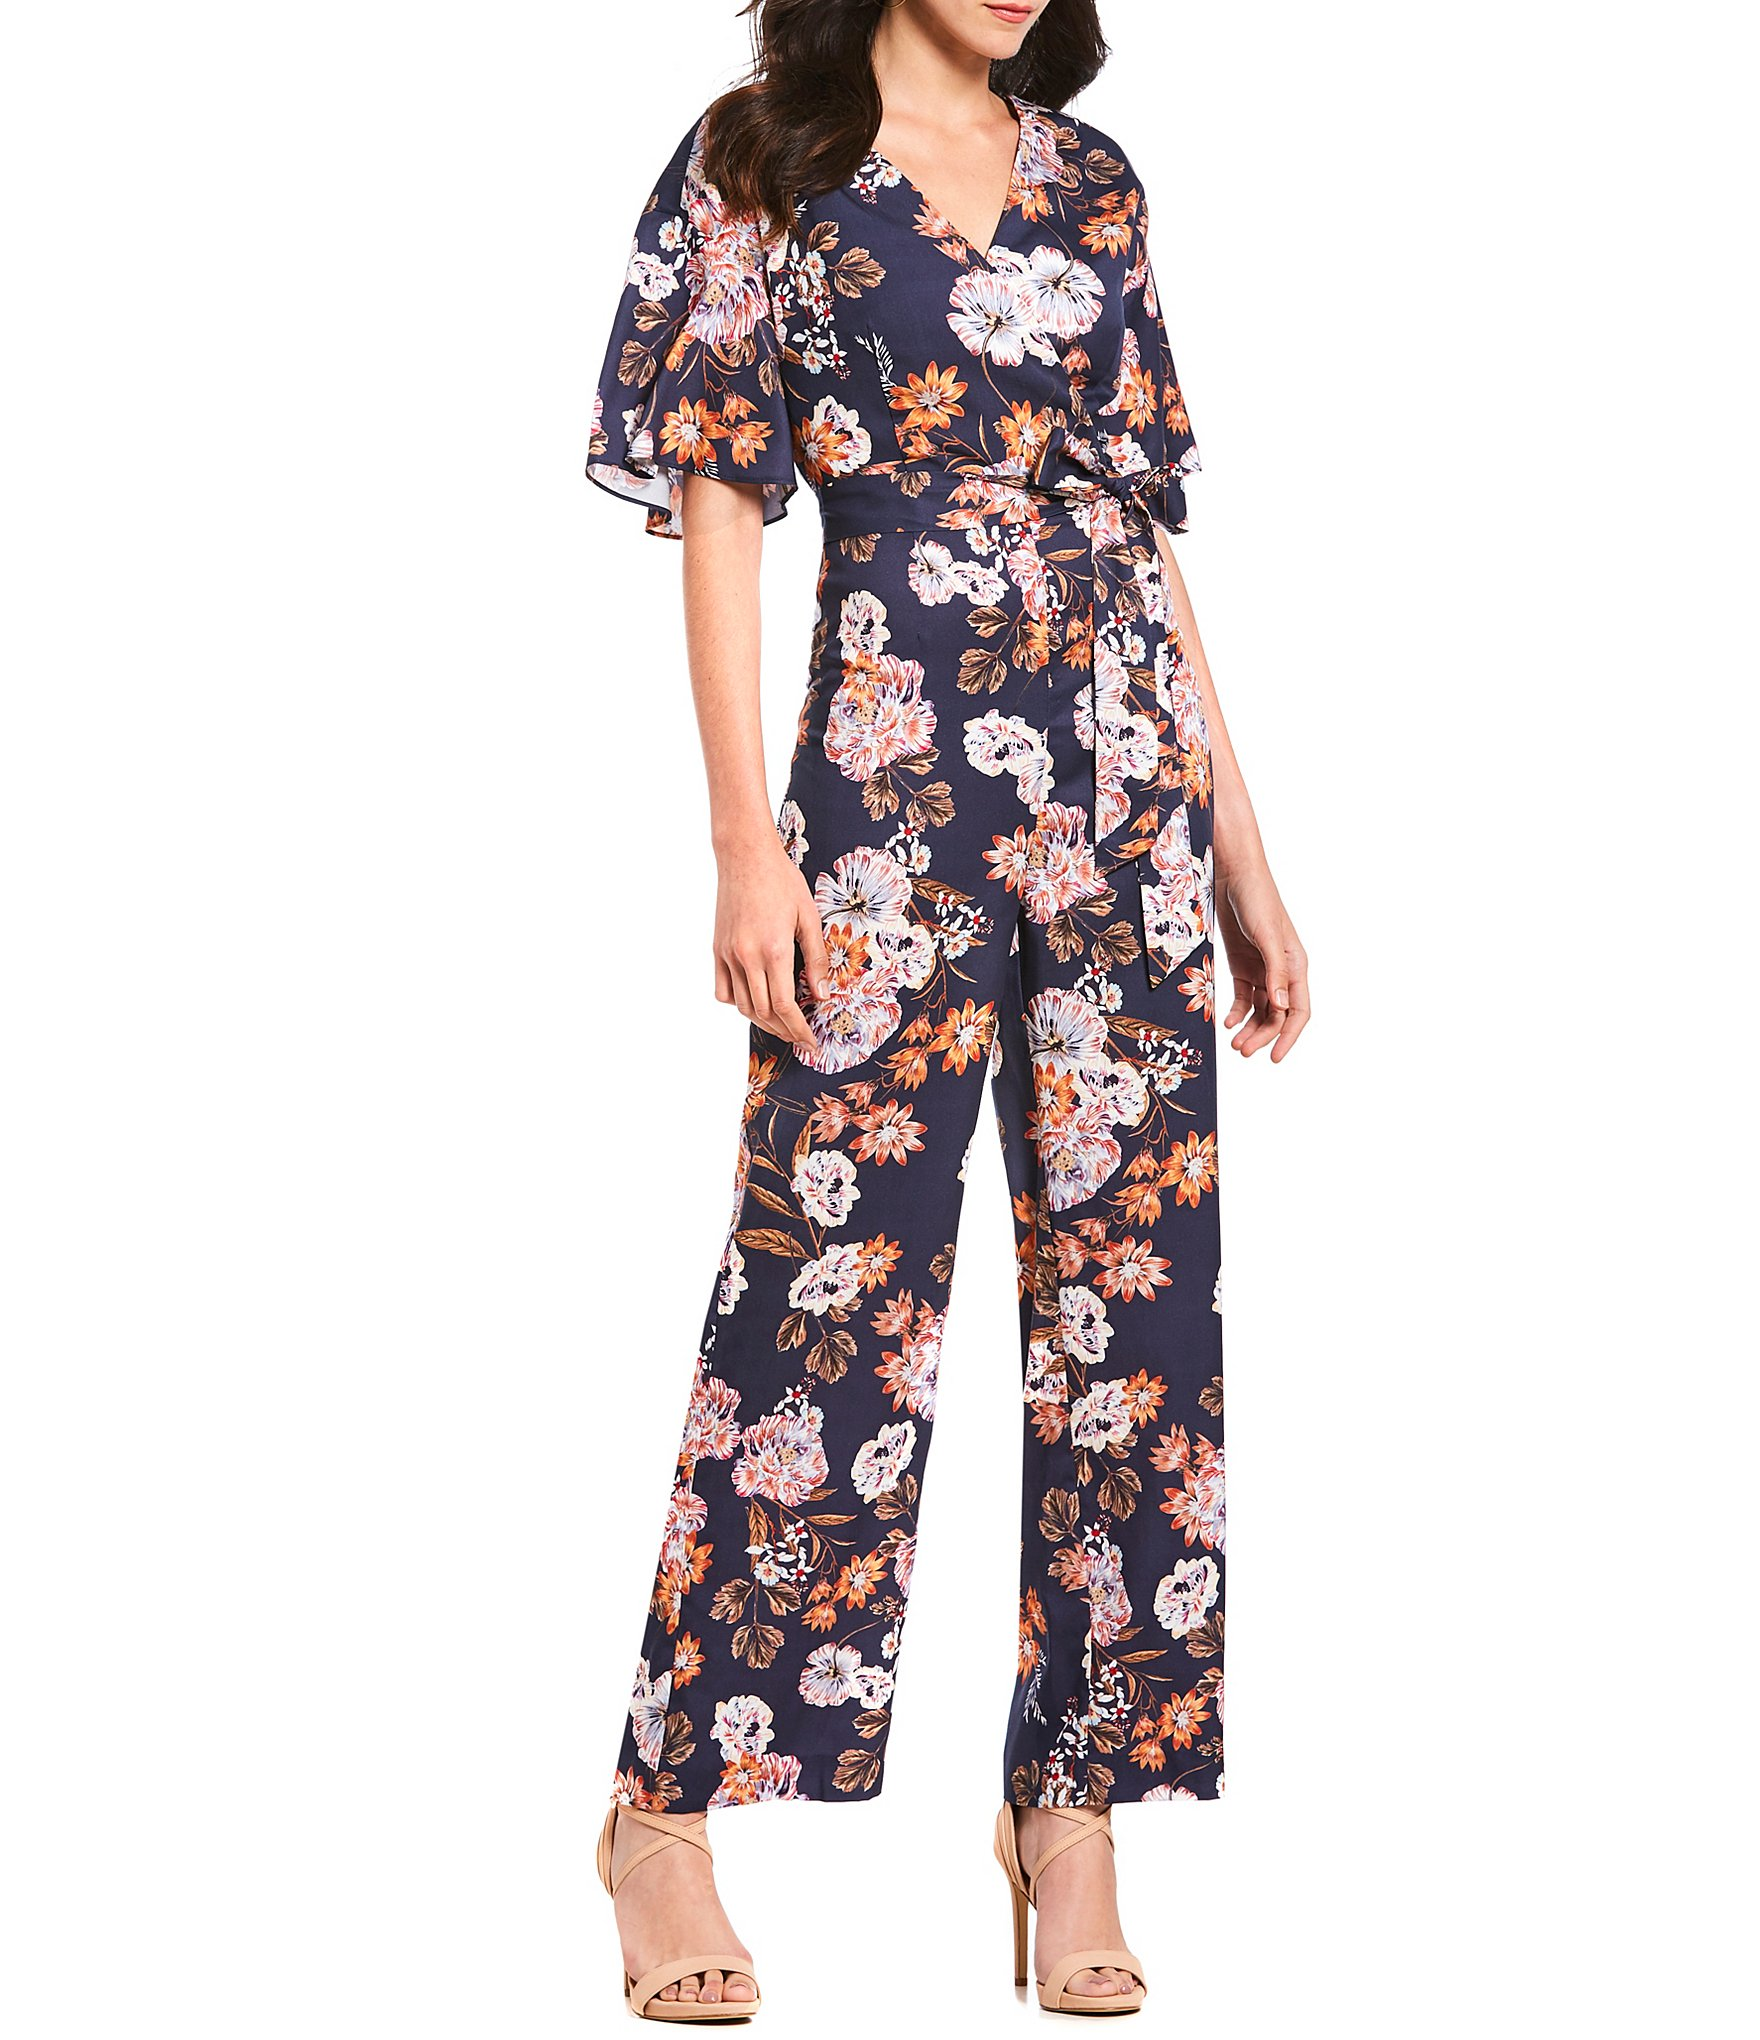 Dillards Clearance Womens Jumpsuits Rompers Dillards Dillards